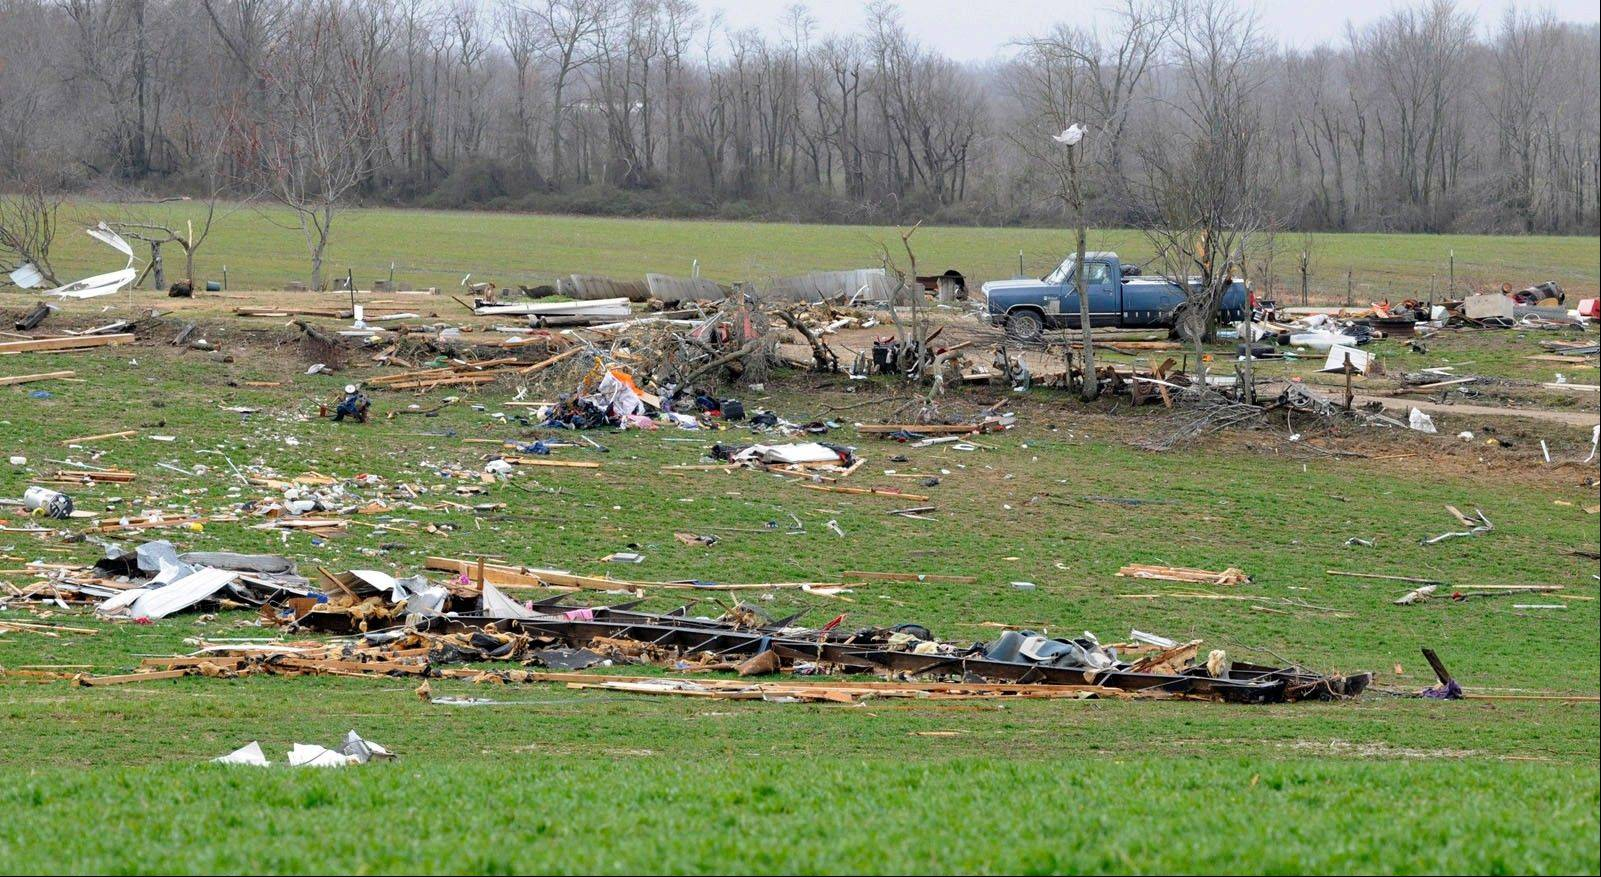 A mobile home occupied by two Puxico, Mo., residents sits destroyed in a field about 80 yards from its original location after an early morning storm passed through the area Wednesday, Feb. 29, 2012. Both residents were airlifted to a Cape Girardeau, Mo., hospital.